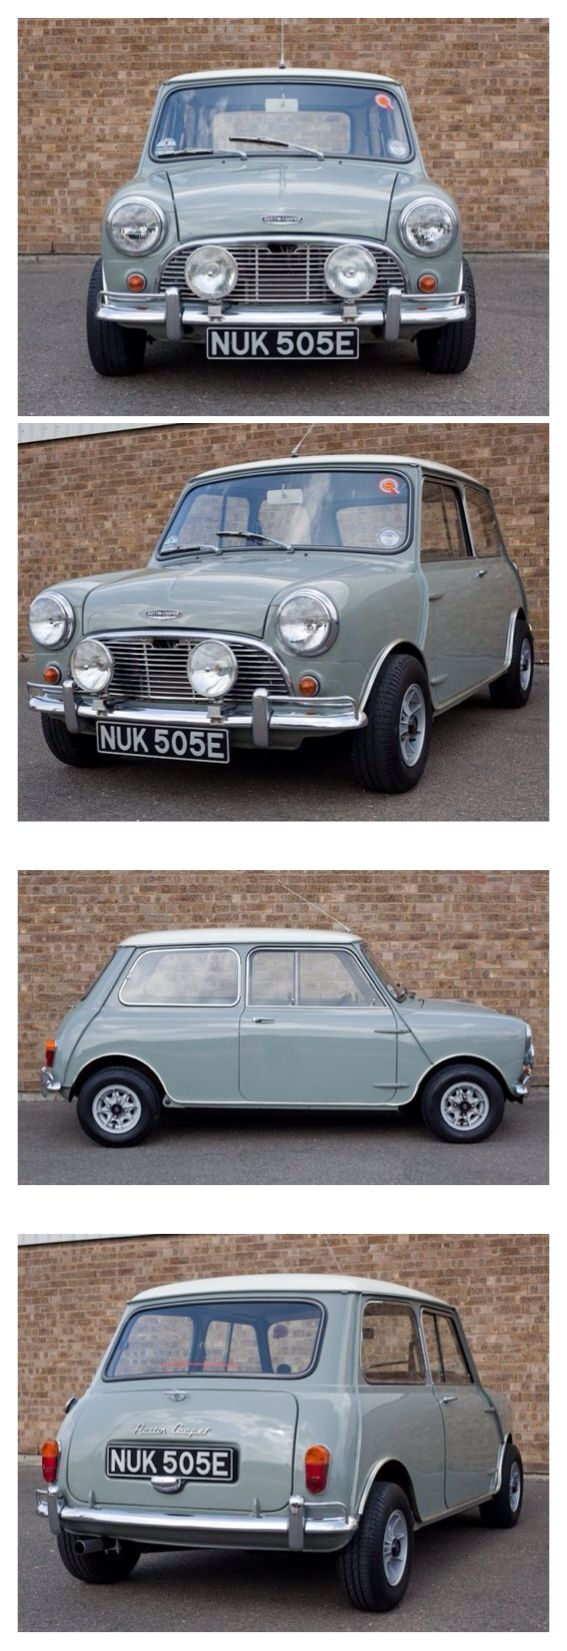 1967 austin mini cooper i had a mini of this vintage but it was